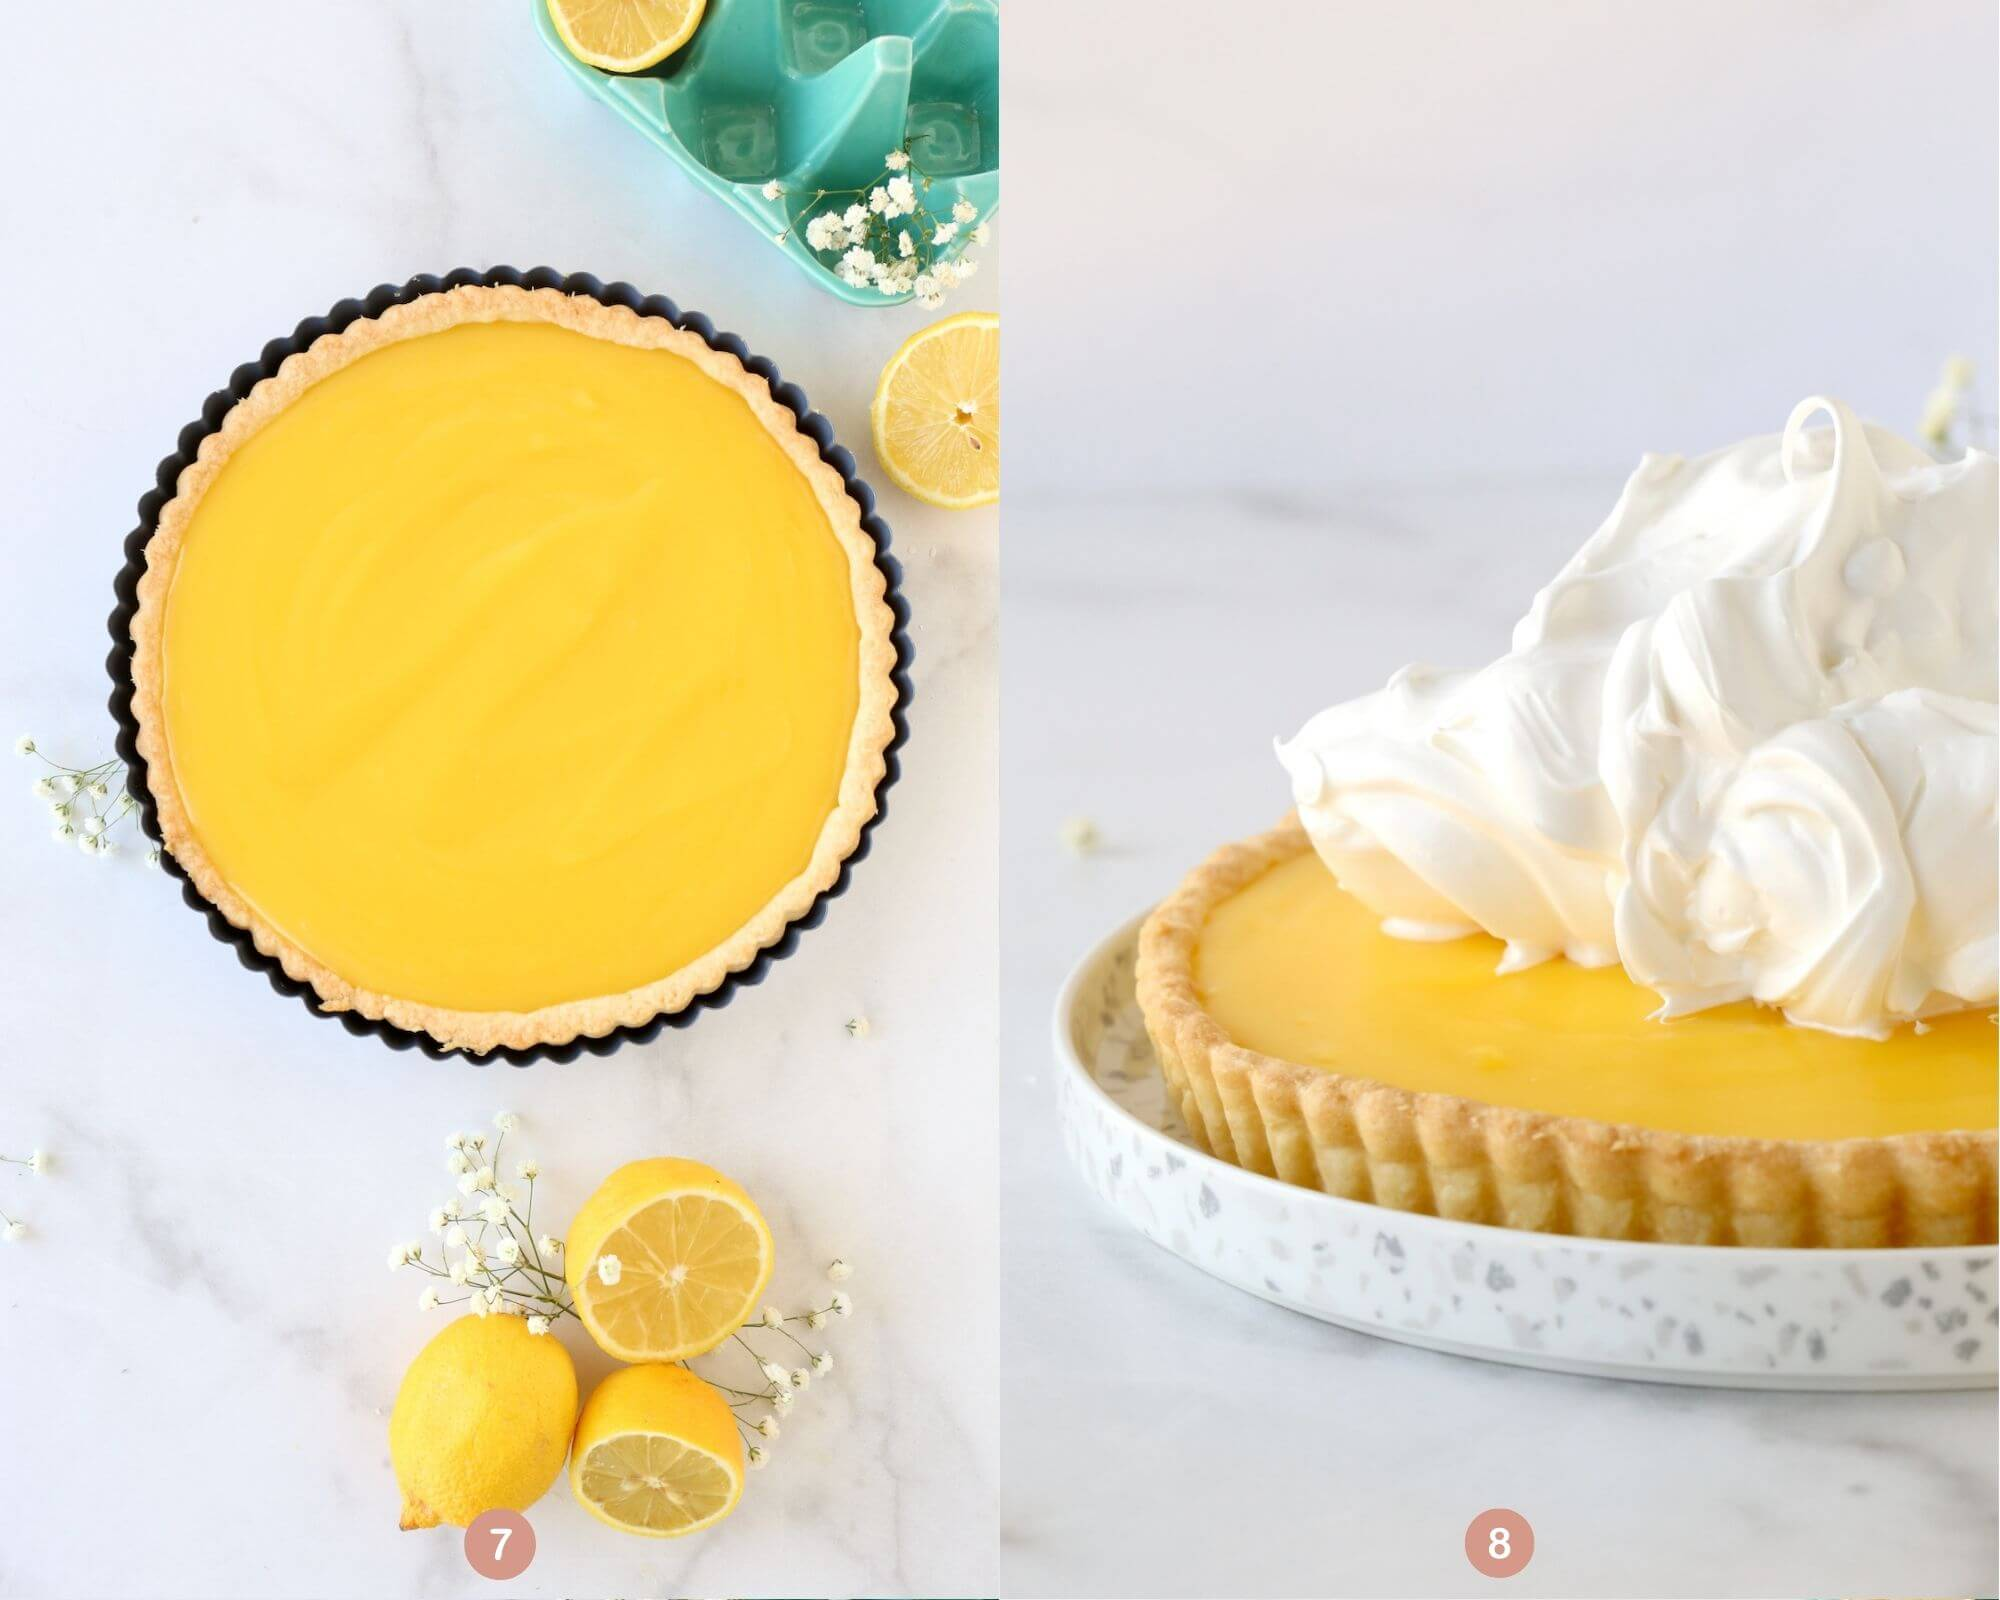 the tart shell filled with lemon curd next to the lemon tart topped with meringue.